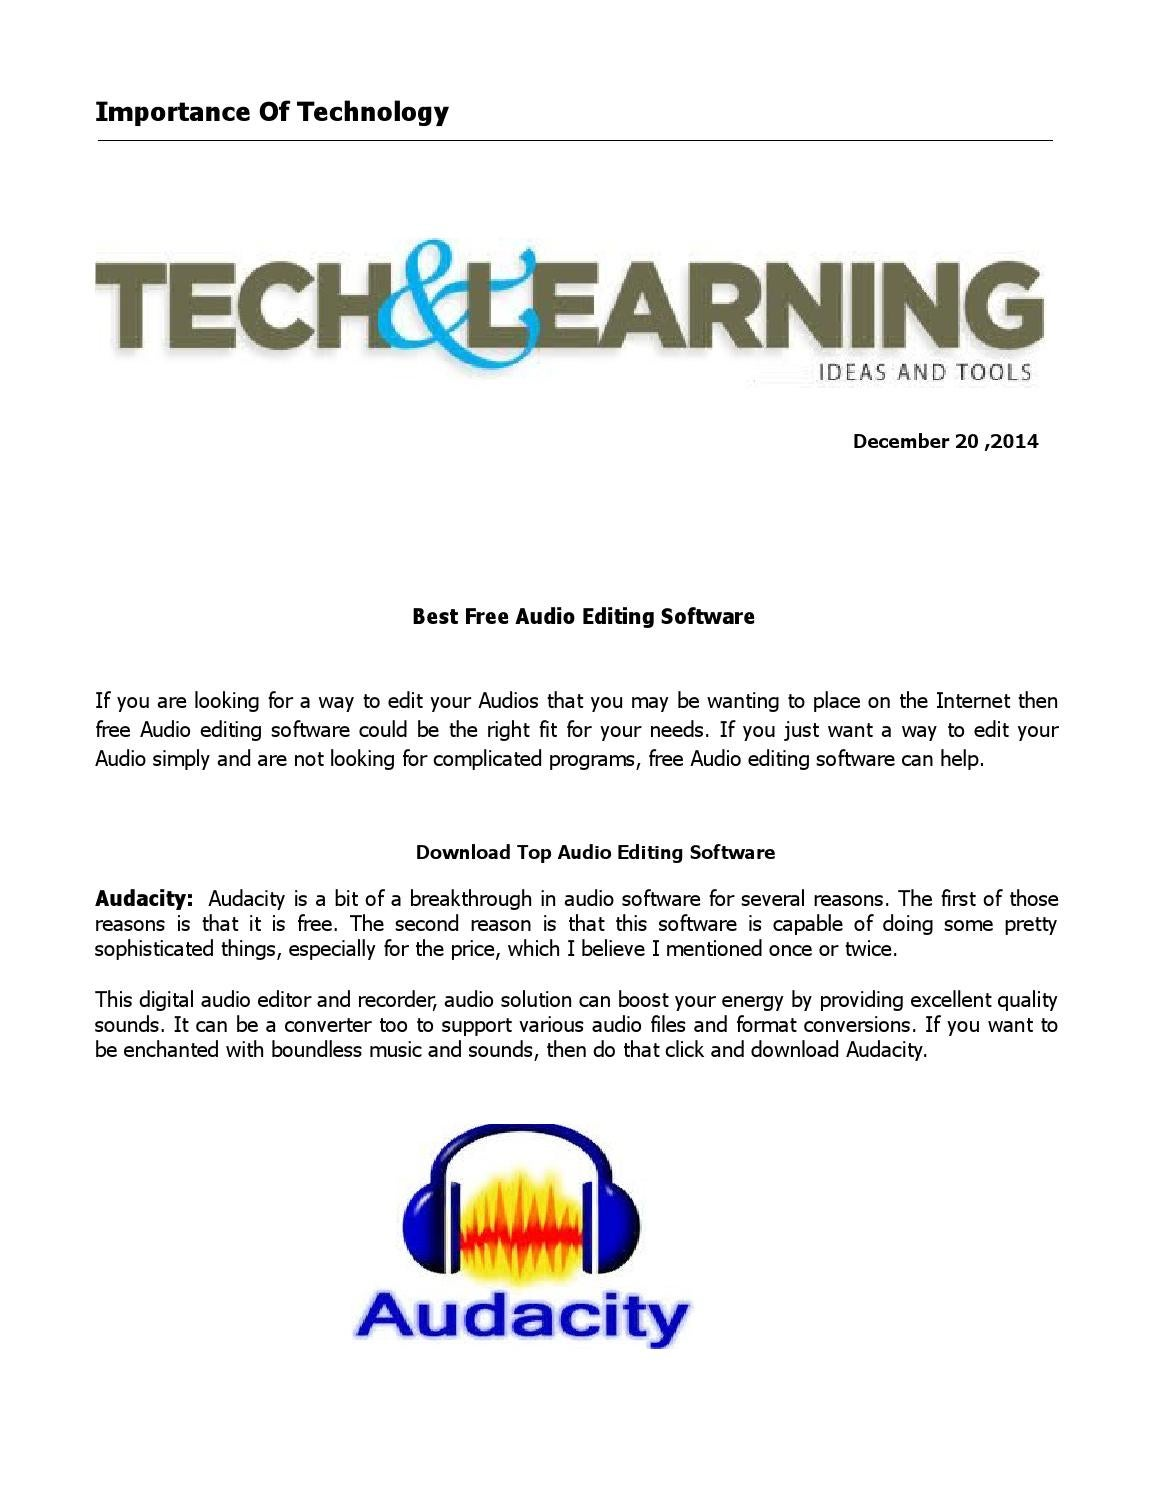 Best Free Audio Editing Software by Importance Of Technology